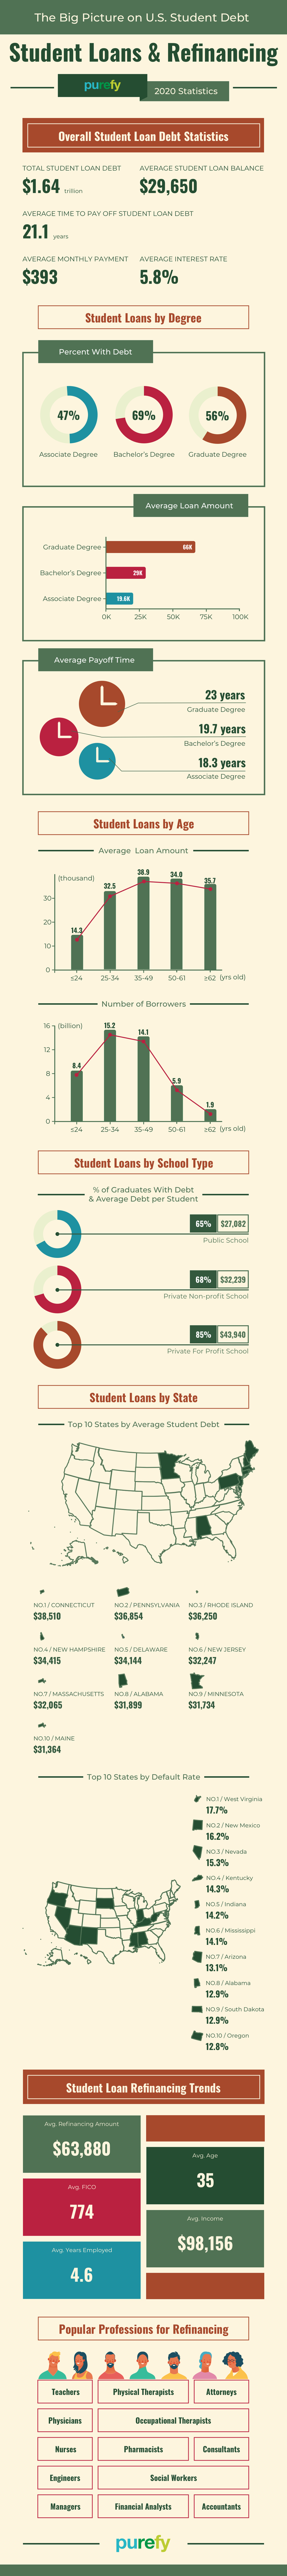 2020-average-student-loan-debt-infographic